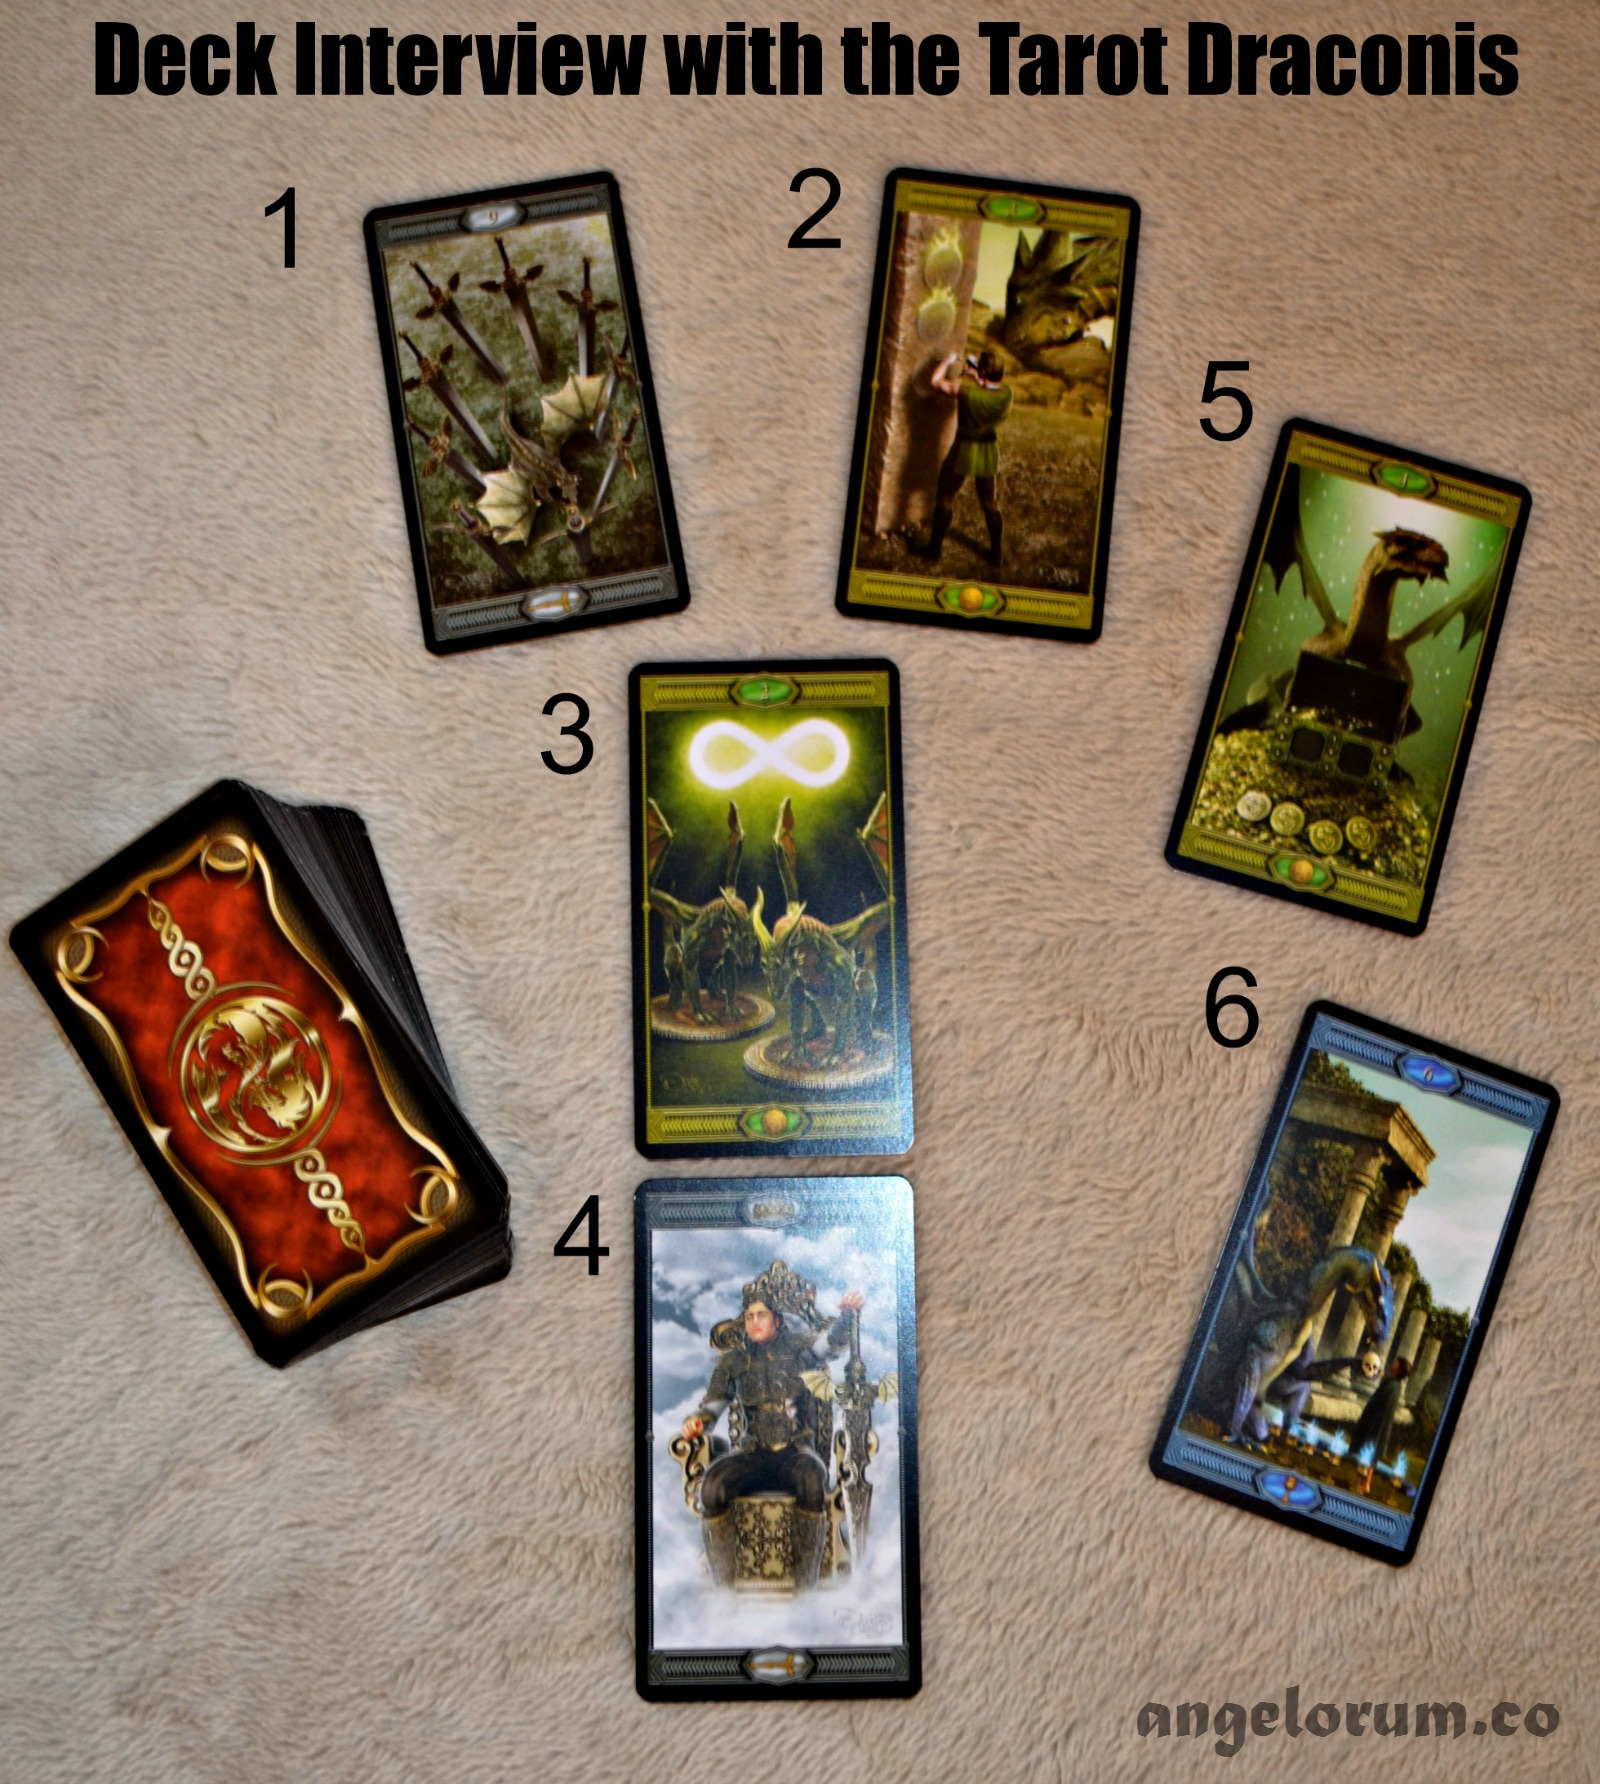 Tarot Draconis Deck Interview